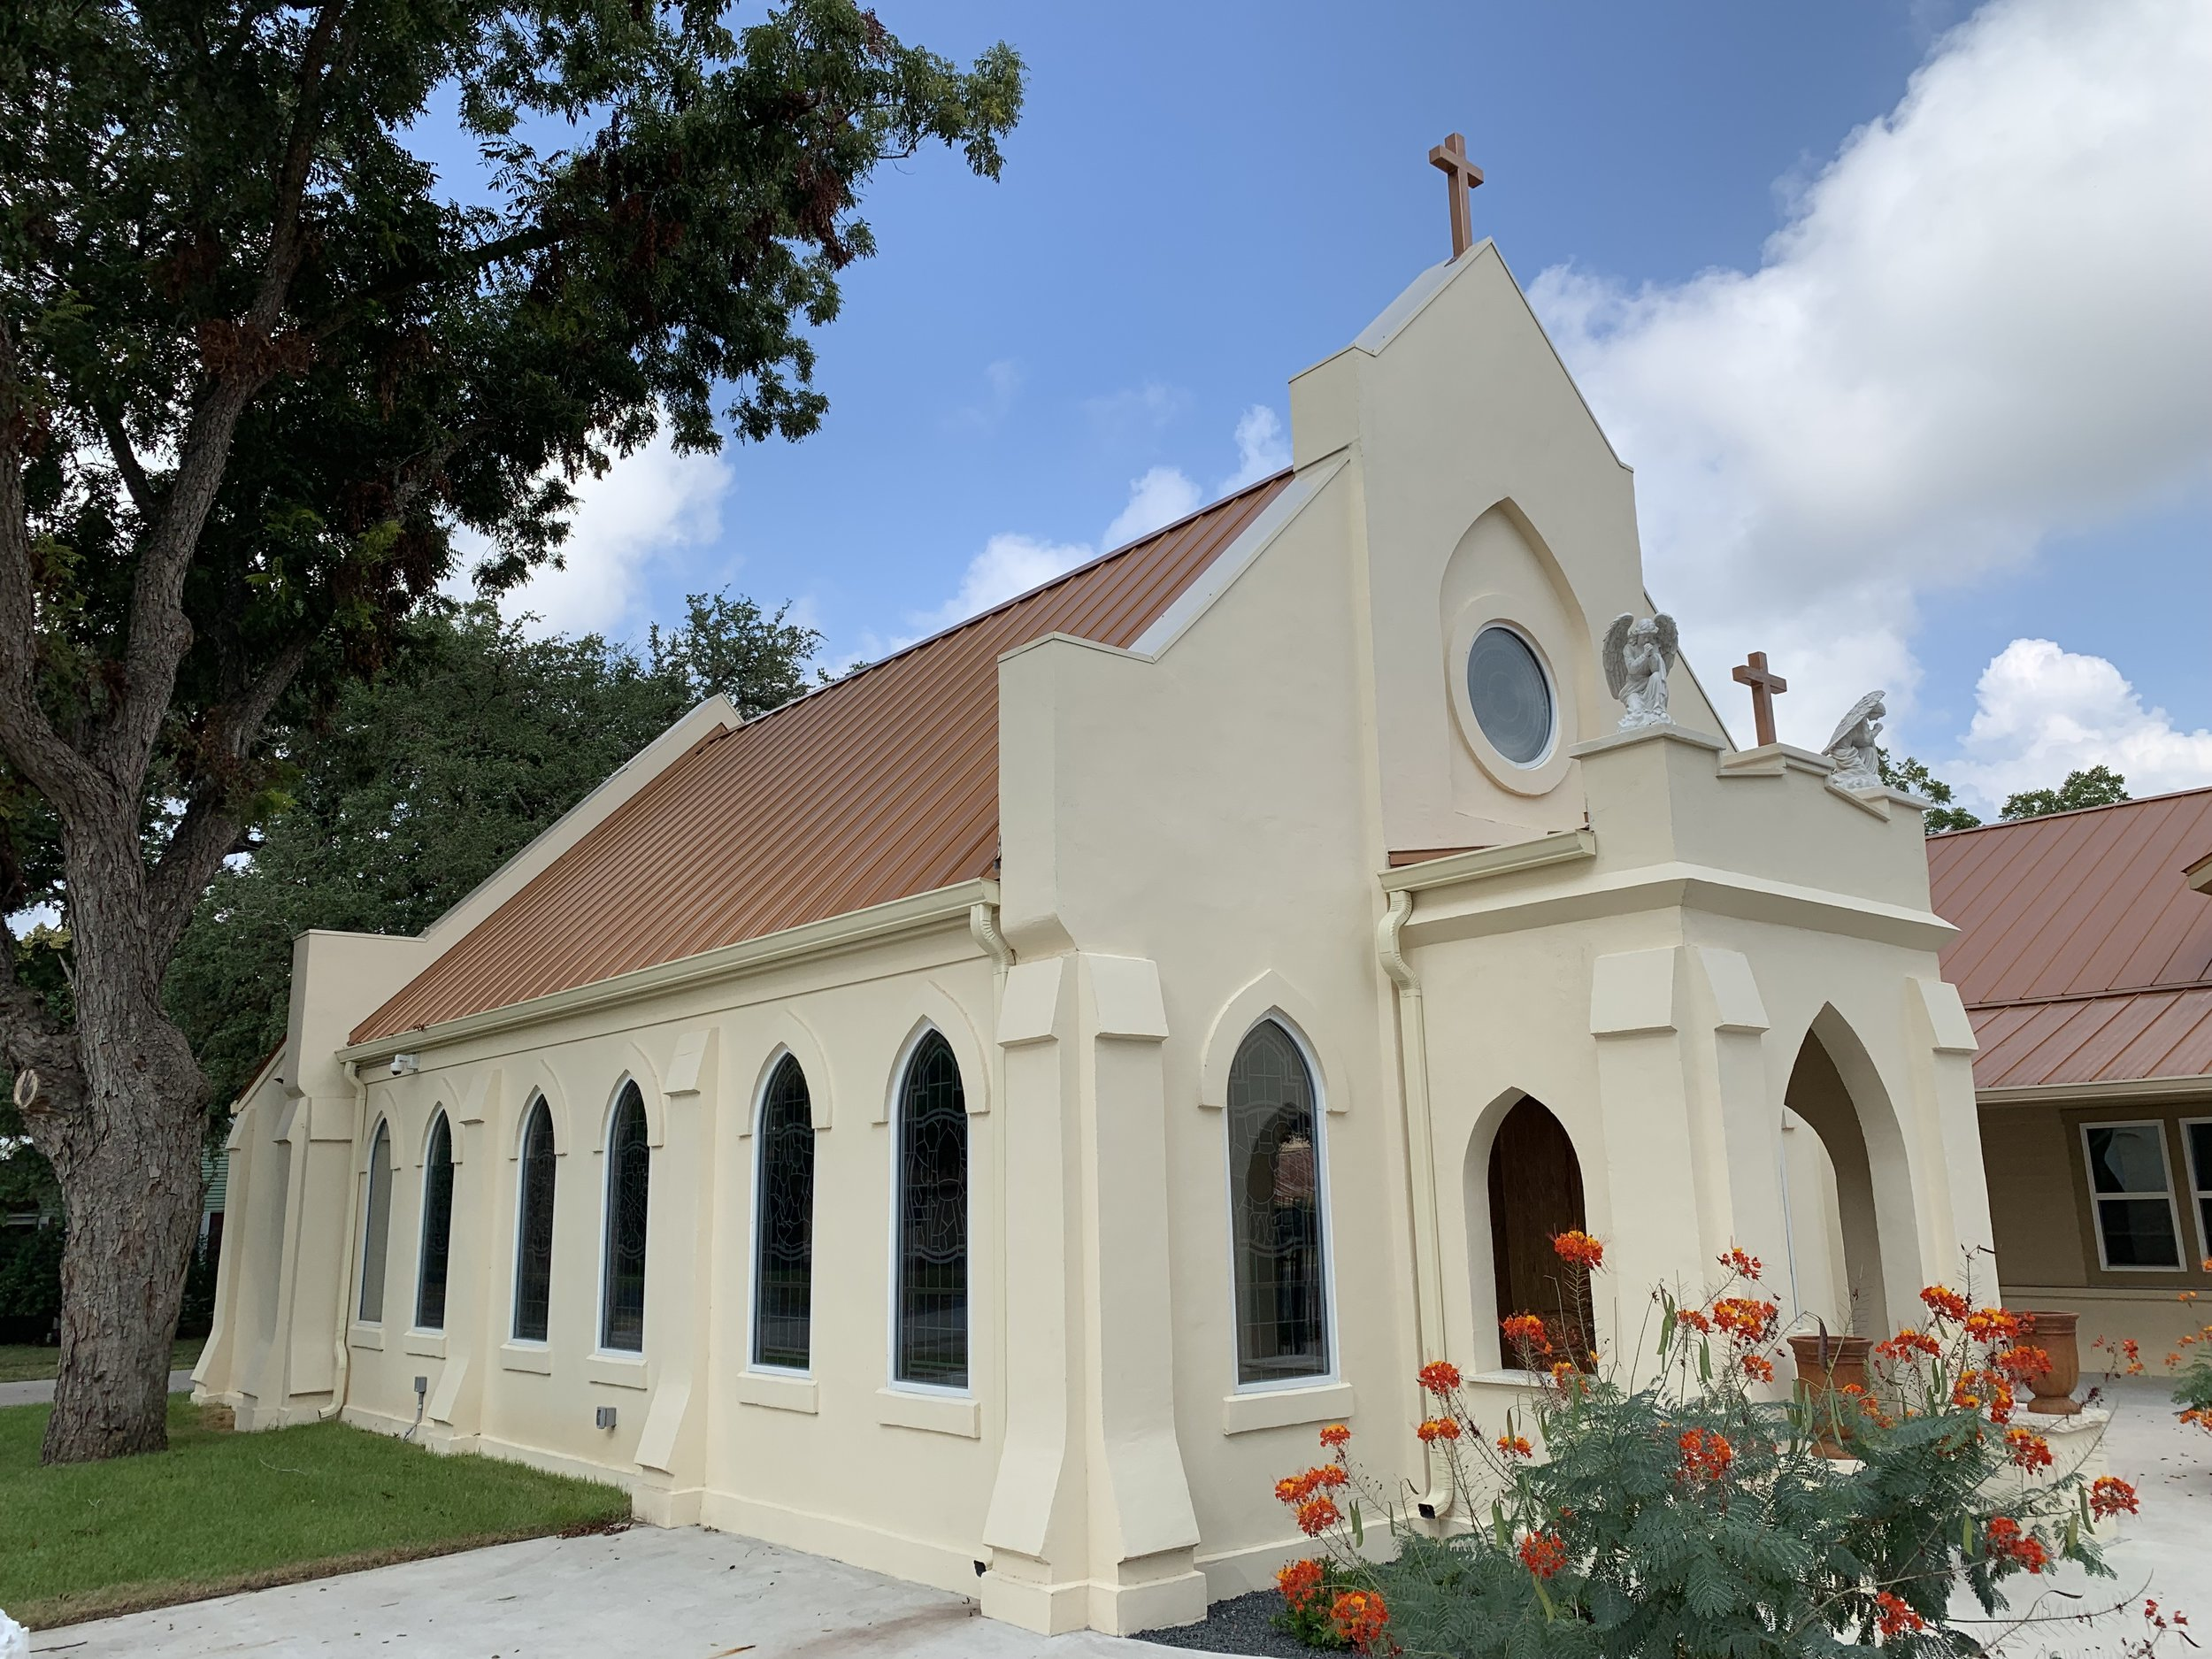 St. Paul Catholic Church, Smithville TX New historically-inspired Day Chapel,  with JGA/FGM Architects. Completed June 2019.